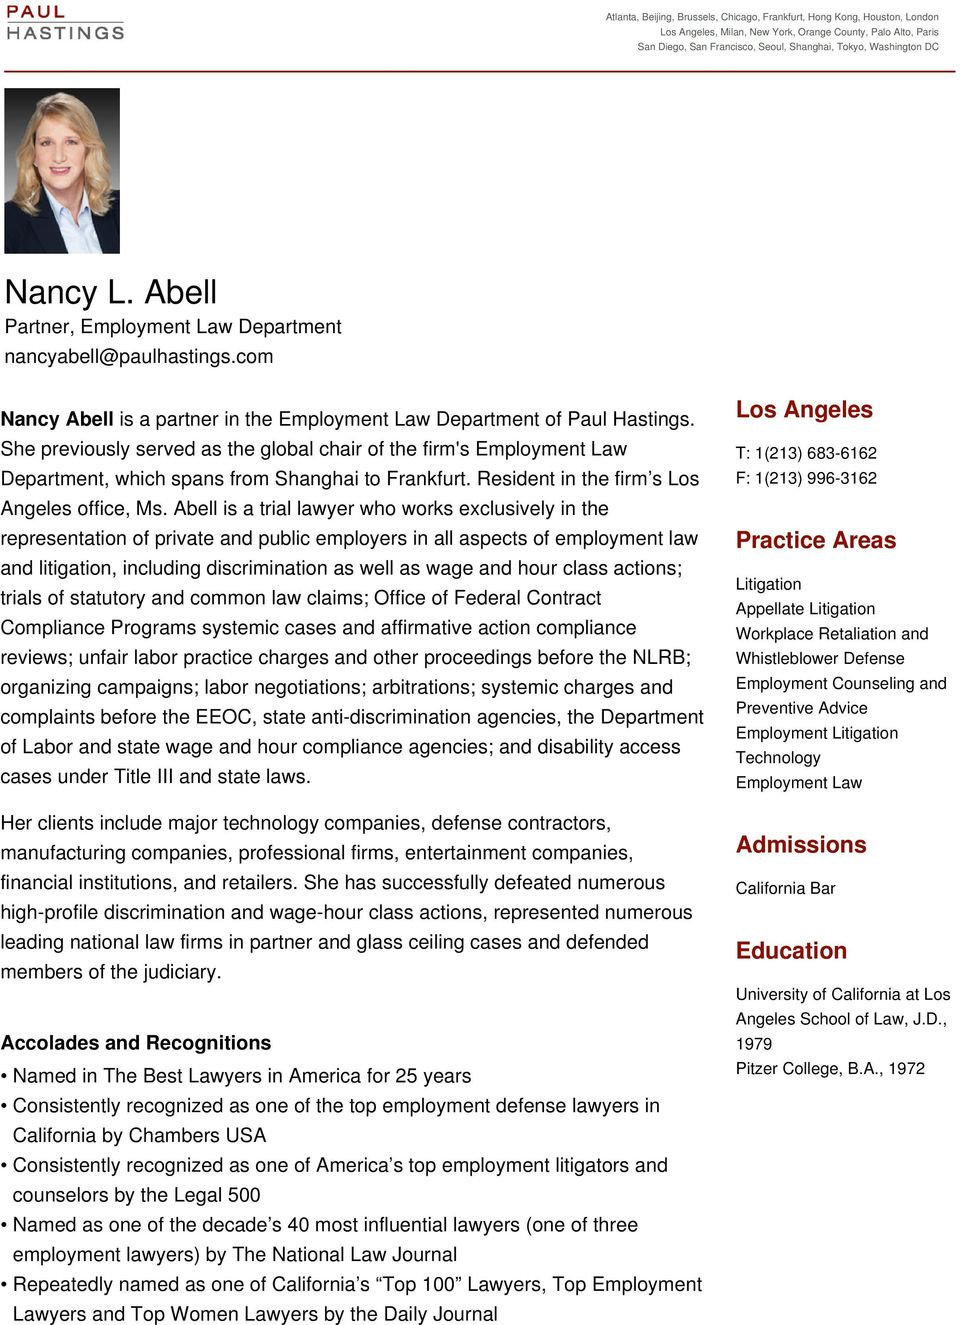 Abell is a trial lawyer who works exclusively in the representation of private and public employers in all aspects of employment law and litigation, including discrimination as well as wage and hour